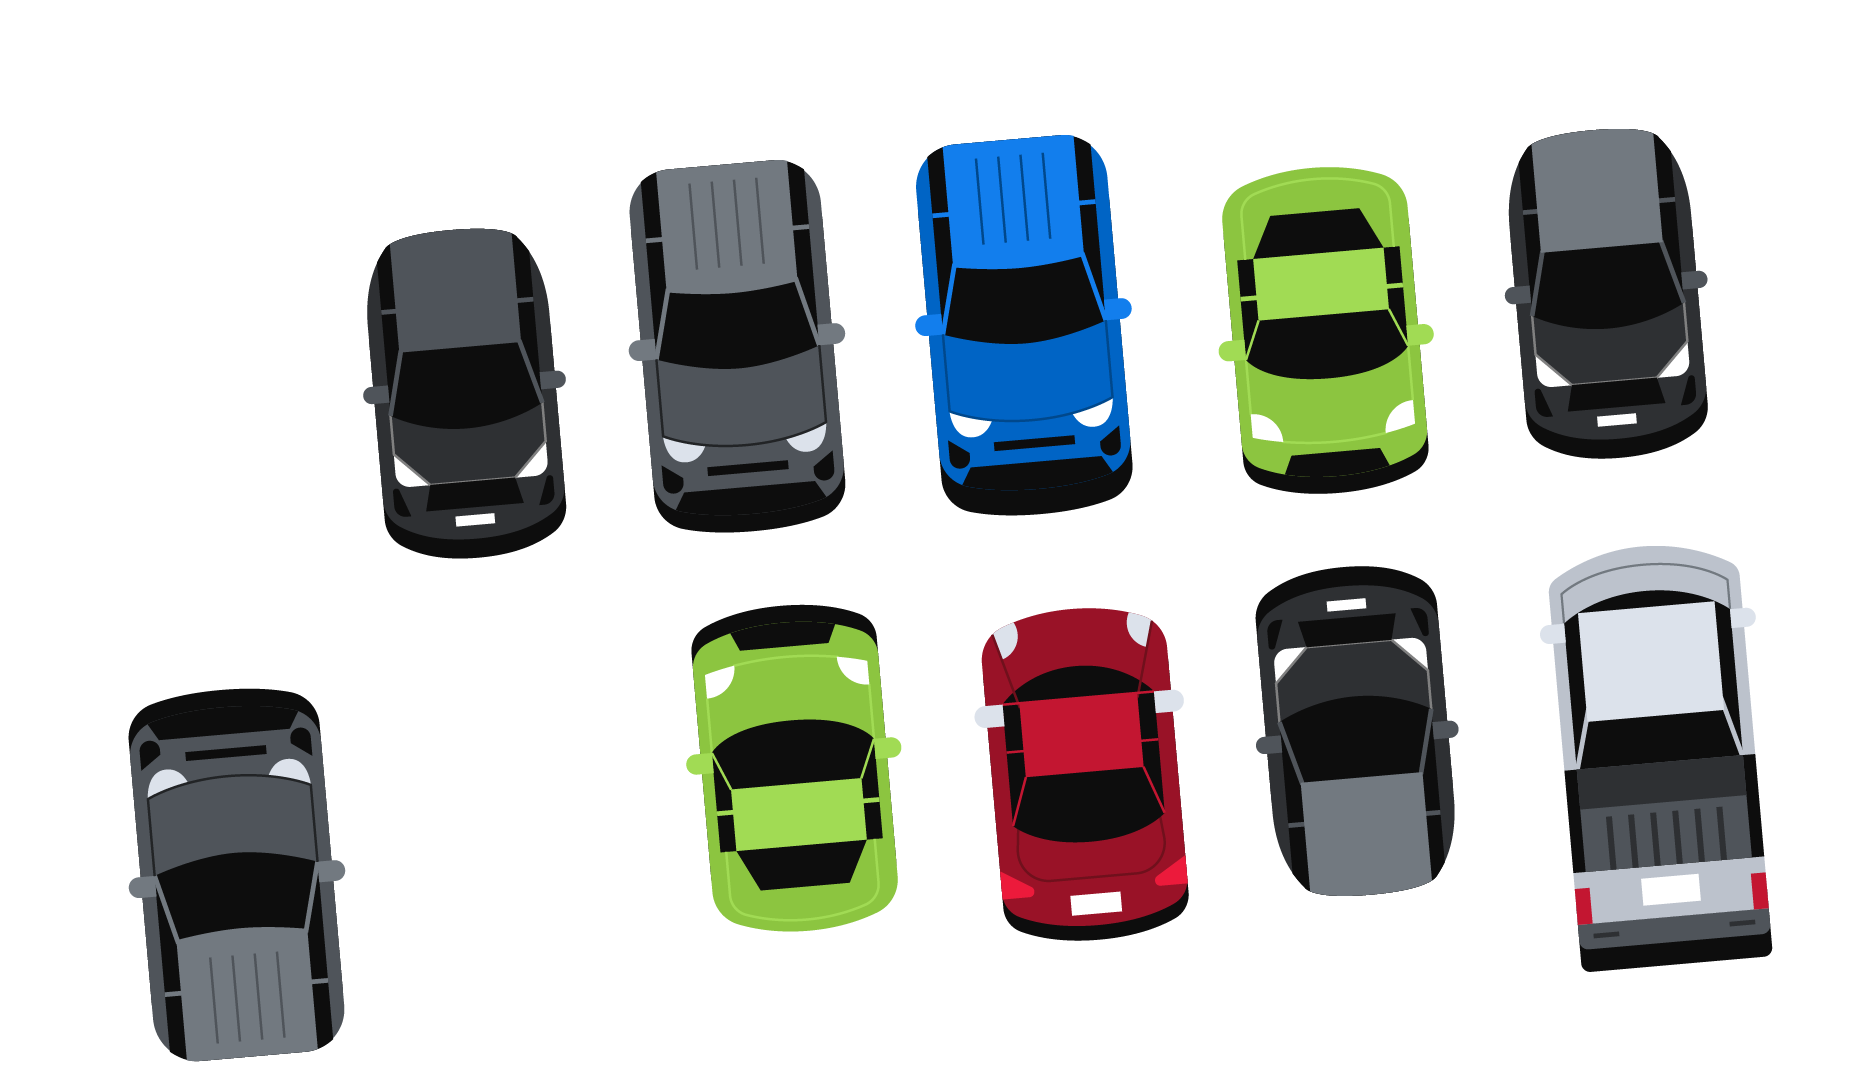 Illustration of cars in a parking lot